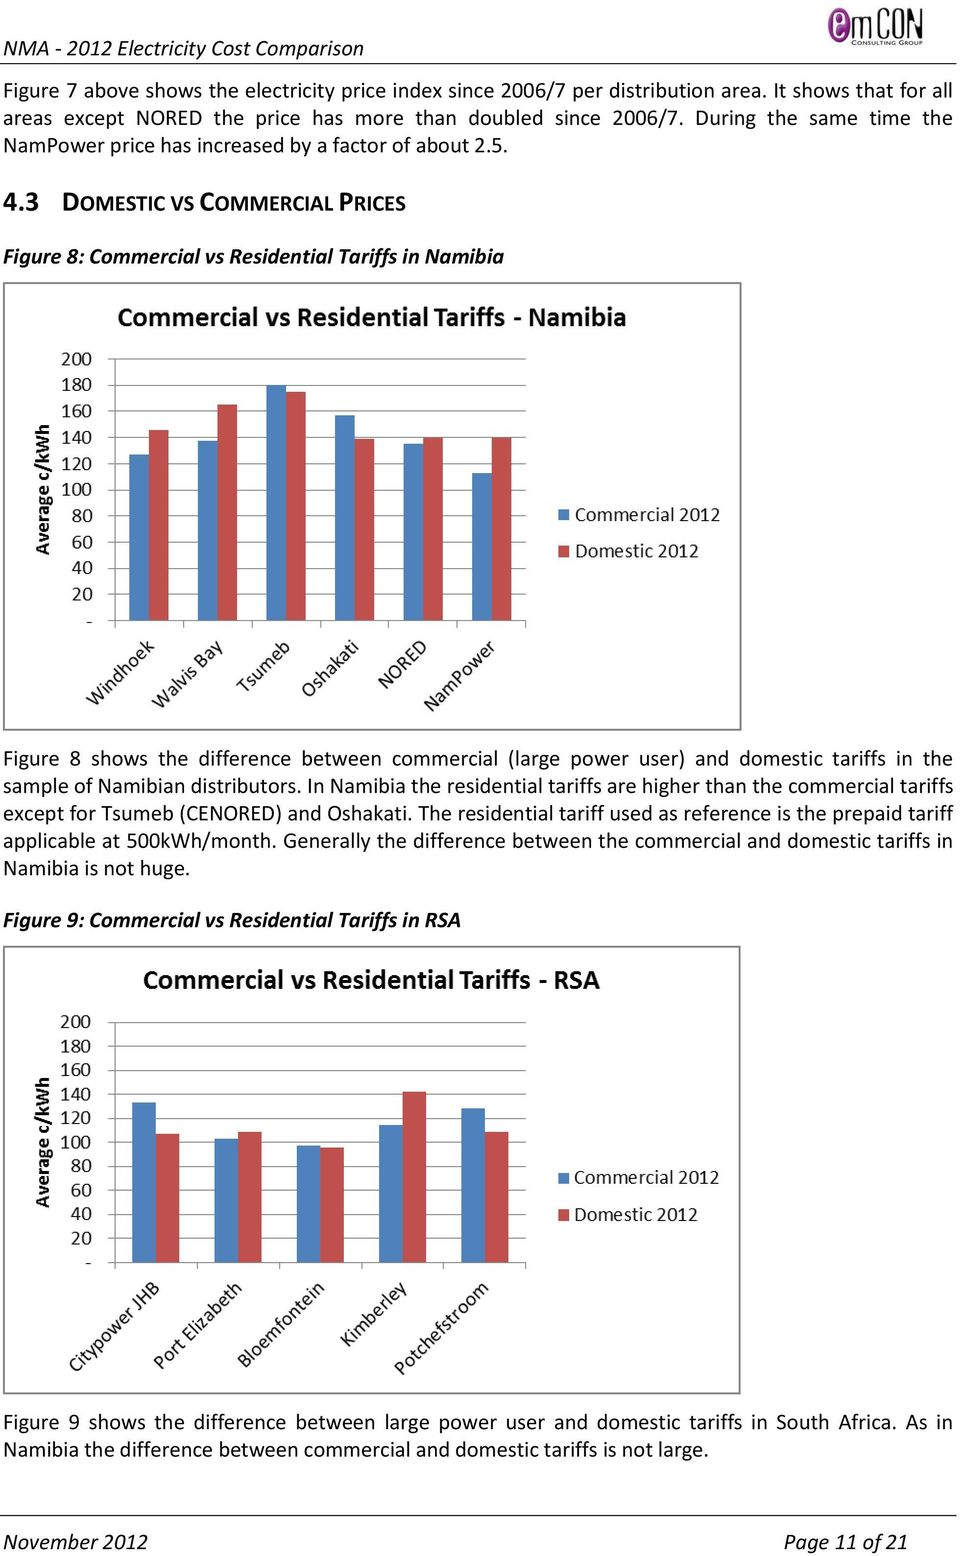 3 DOMESTIC VS COMMERCIAL PRICES Figure 8: Commercial vs Residential Tariffs in Namibia Figure 8 shows the difference between commercial (large power user) and domestic tariffs in the sample of